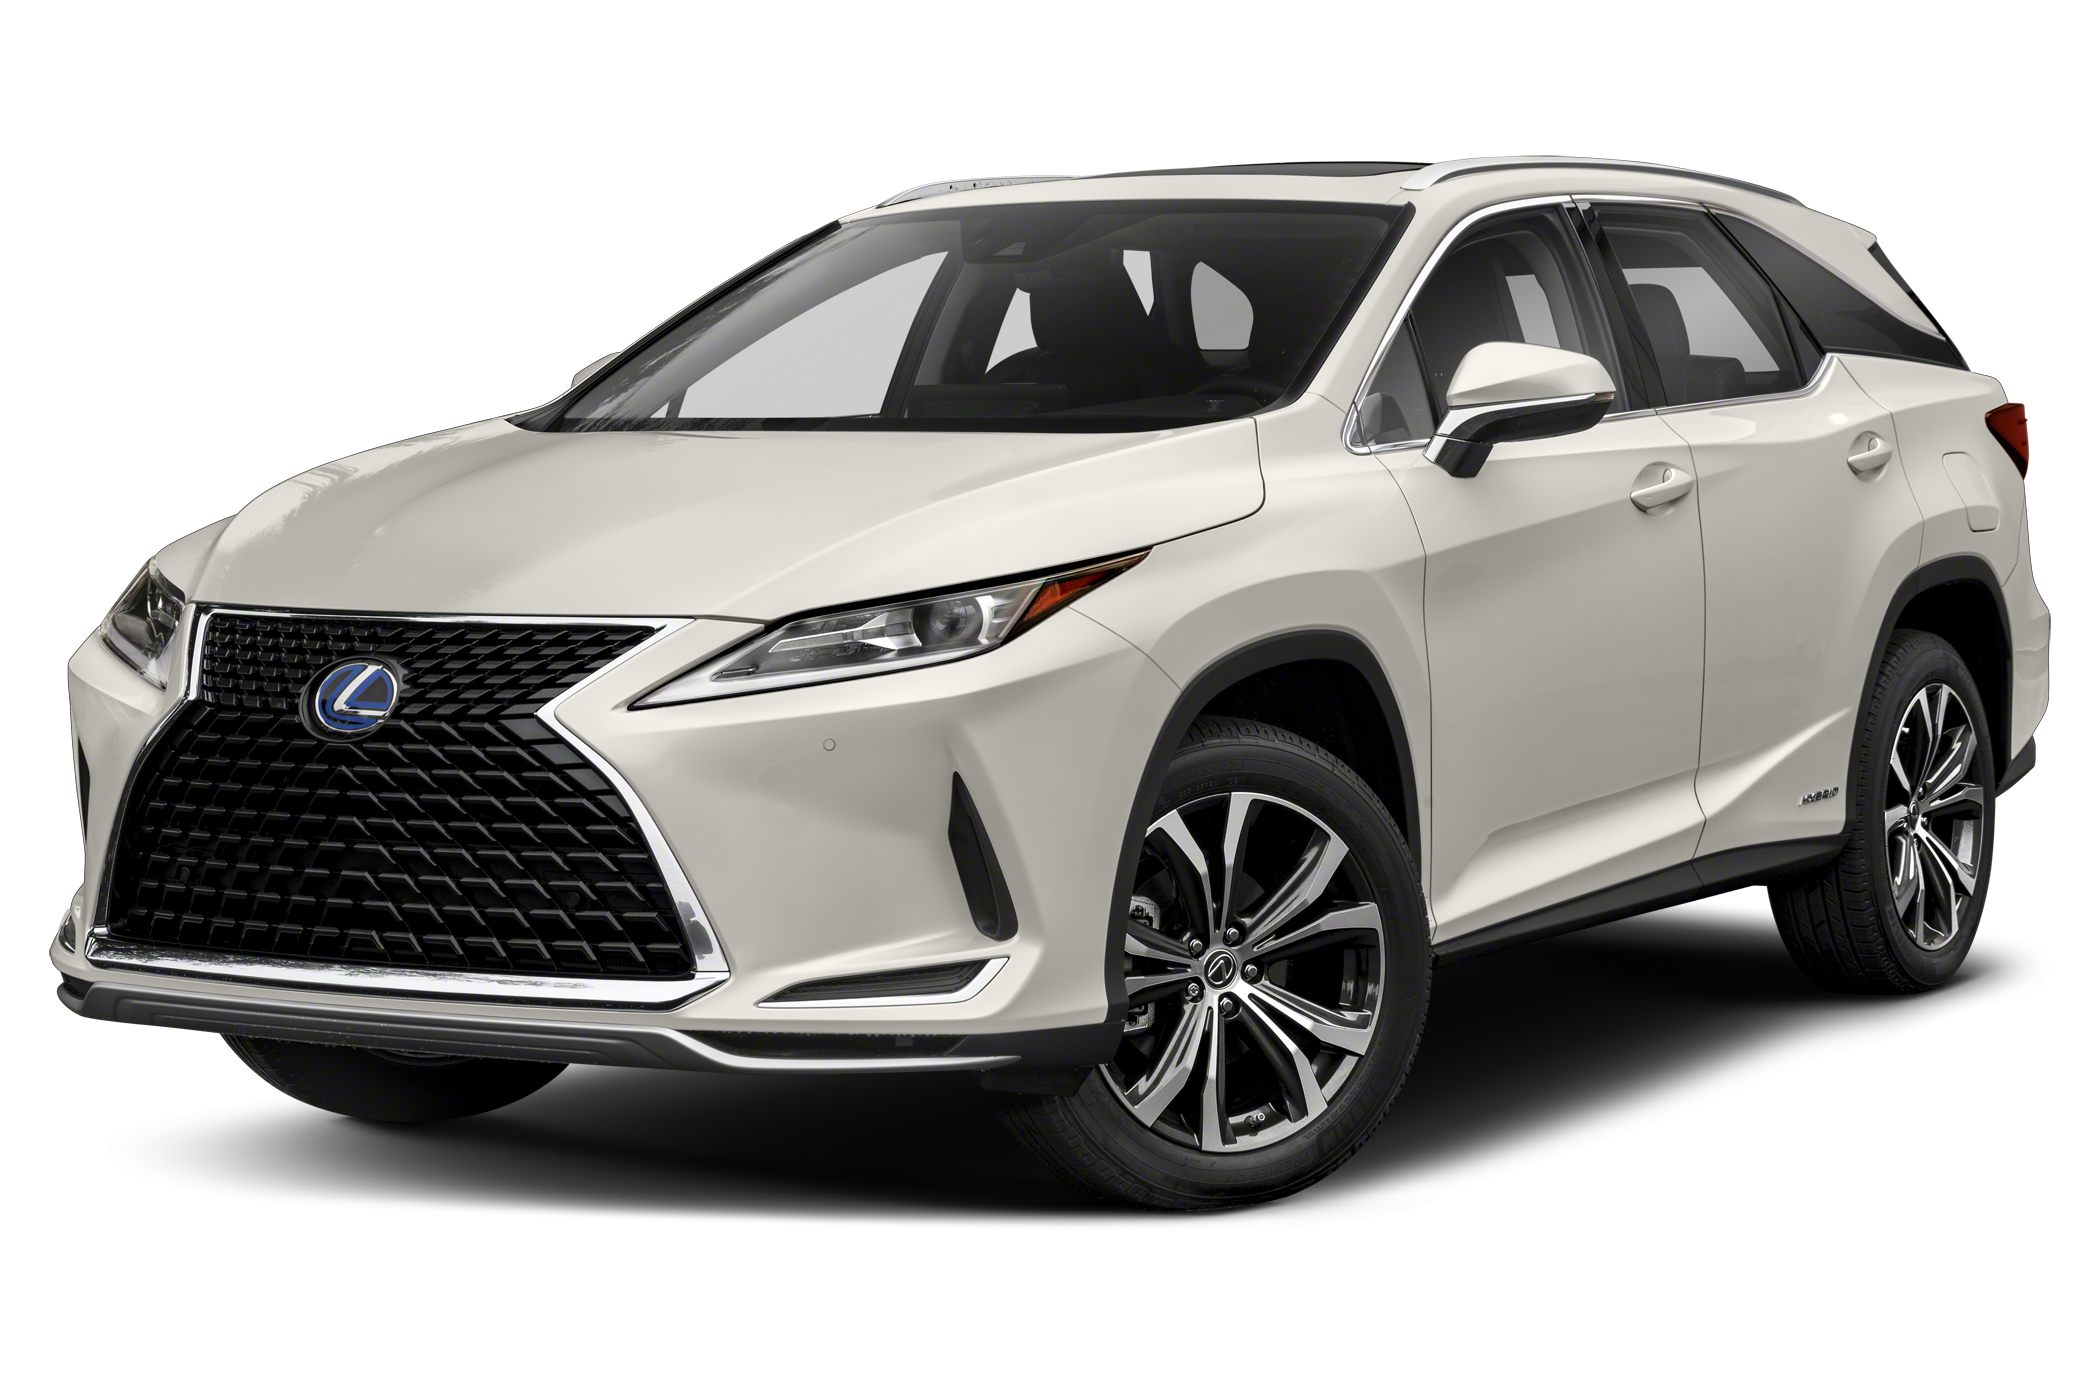 New 2021 Lexus Rx 350 Dashboard, Deals, Dealer Cost ...